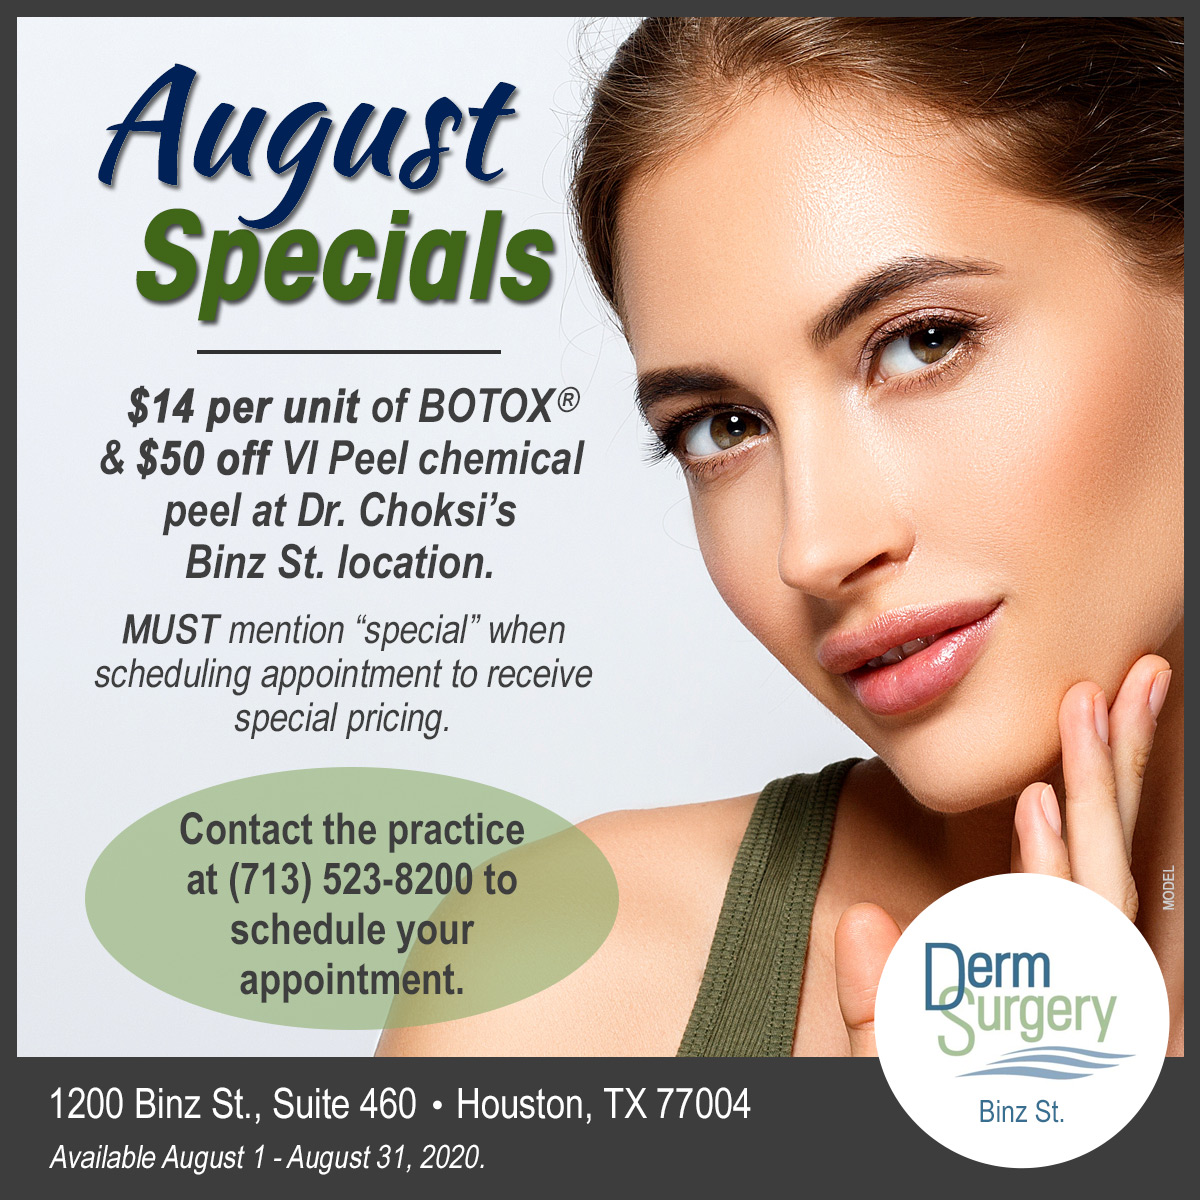 Dr. Choksi's August Special